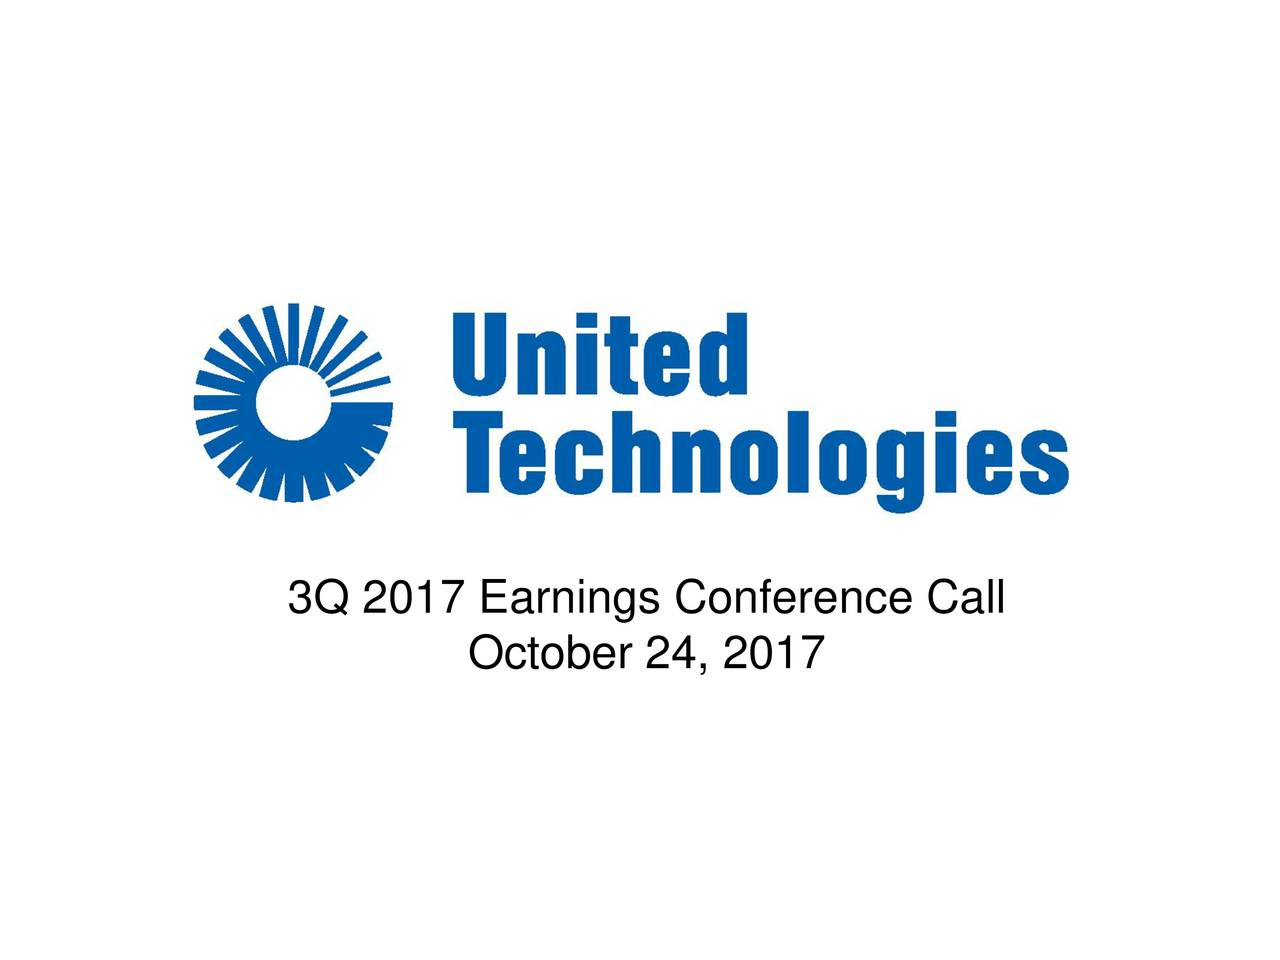 analysis of united technologies corporation Low storage costs (united technologies corporation) when storage costs are low, competitors have a lower risk of having to unload their inventory all at.